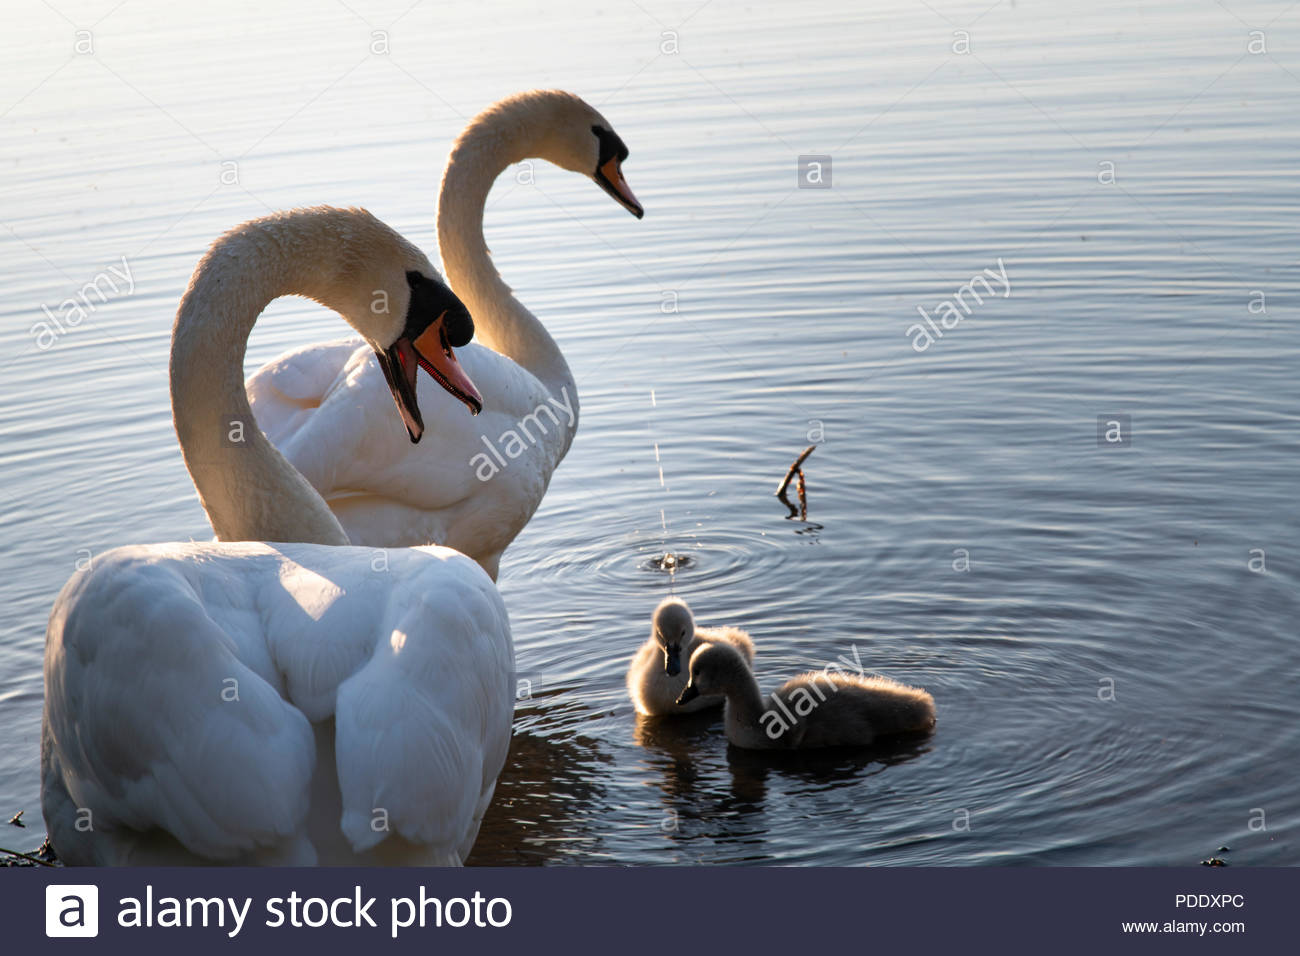 Swans and cygnets on a calm lake at sunset Stock Photo